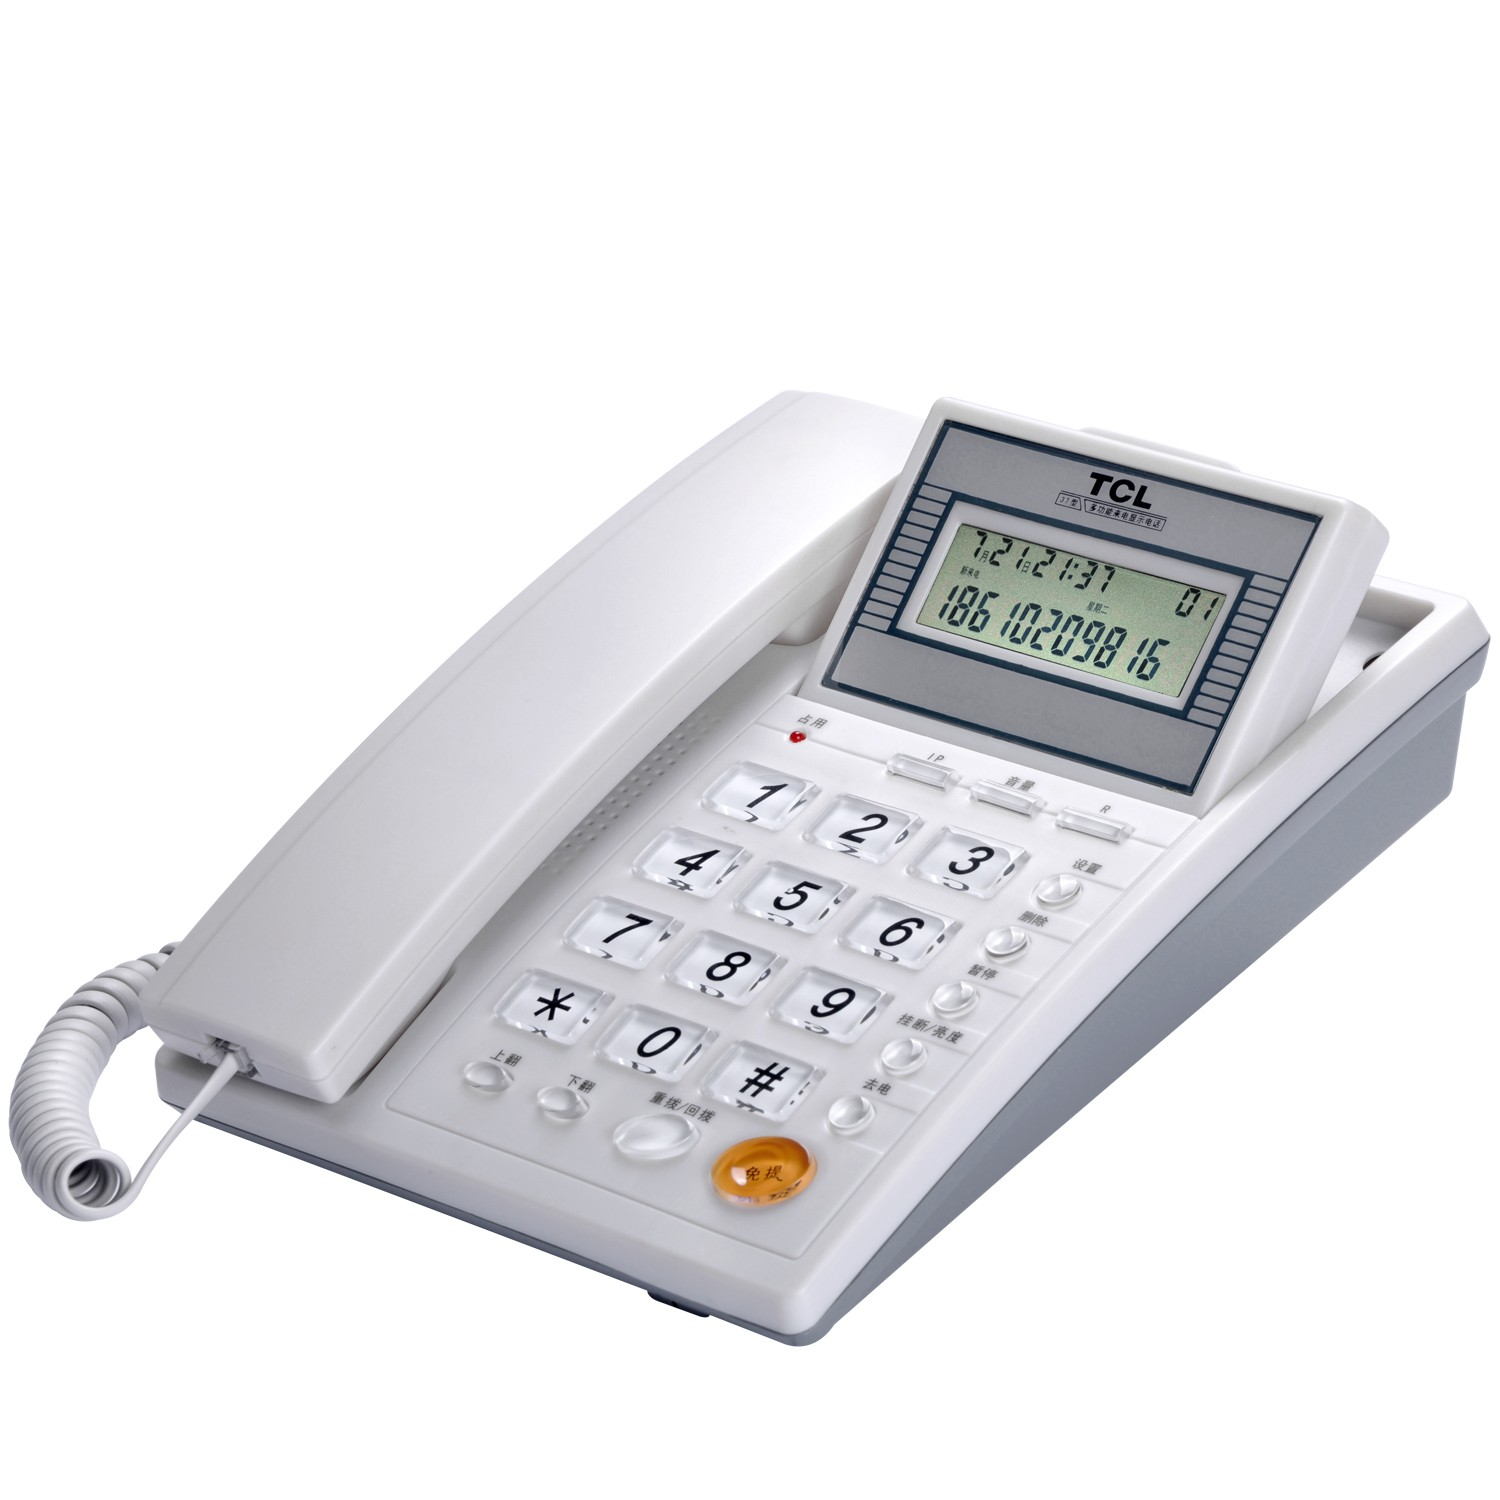 China Post Office Phone, China Post Office Phone Shopping Guide at ...